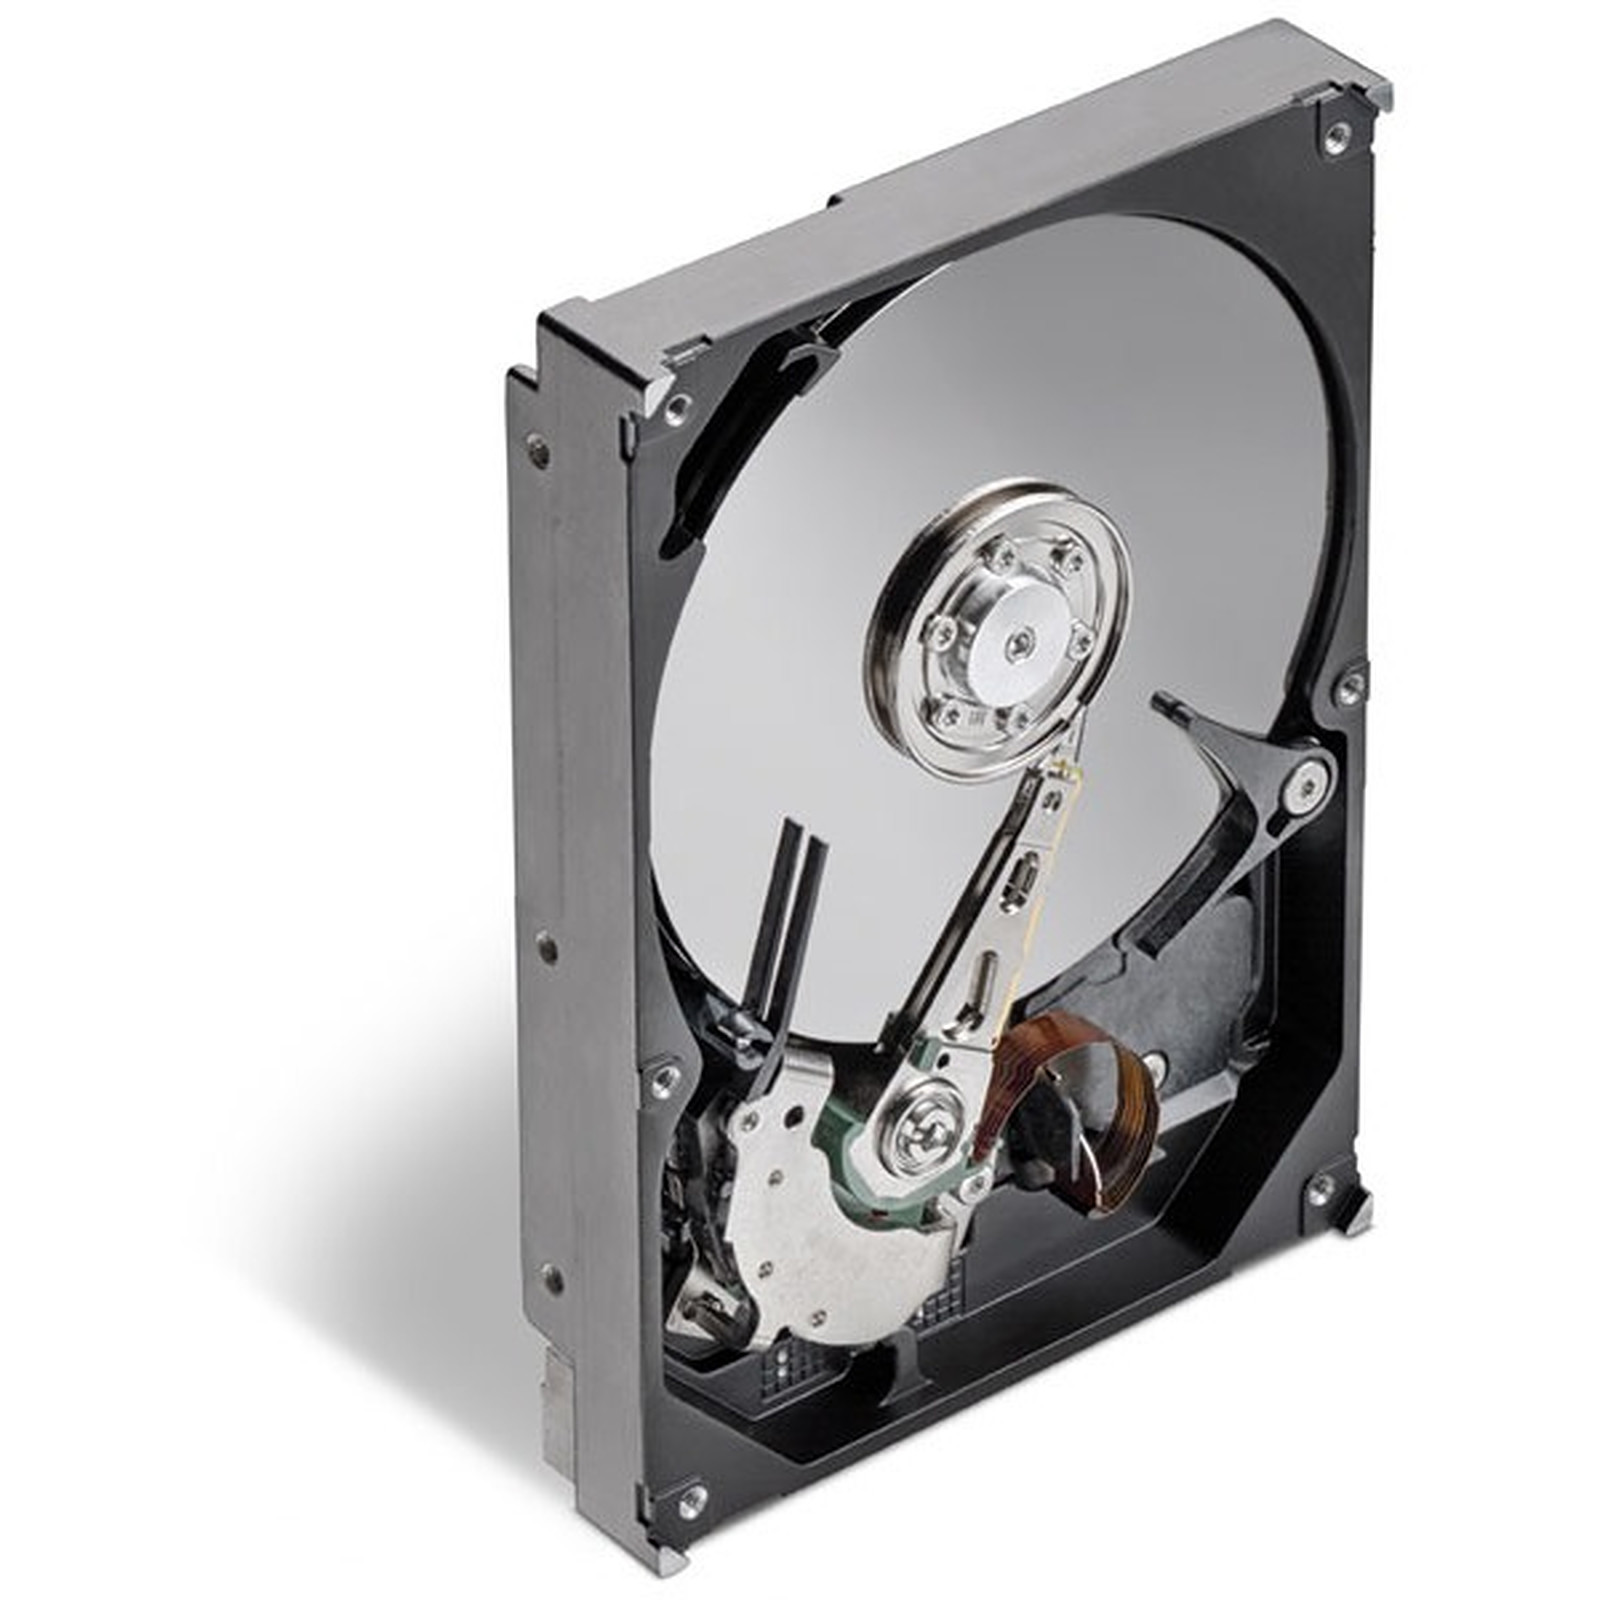 Seagate Barracuda 7200.12 SATA 3Gb/s - 1 To